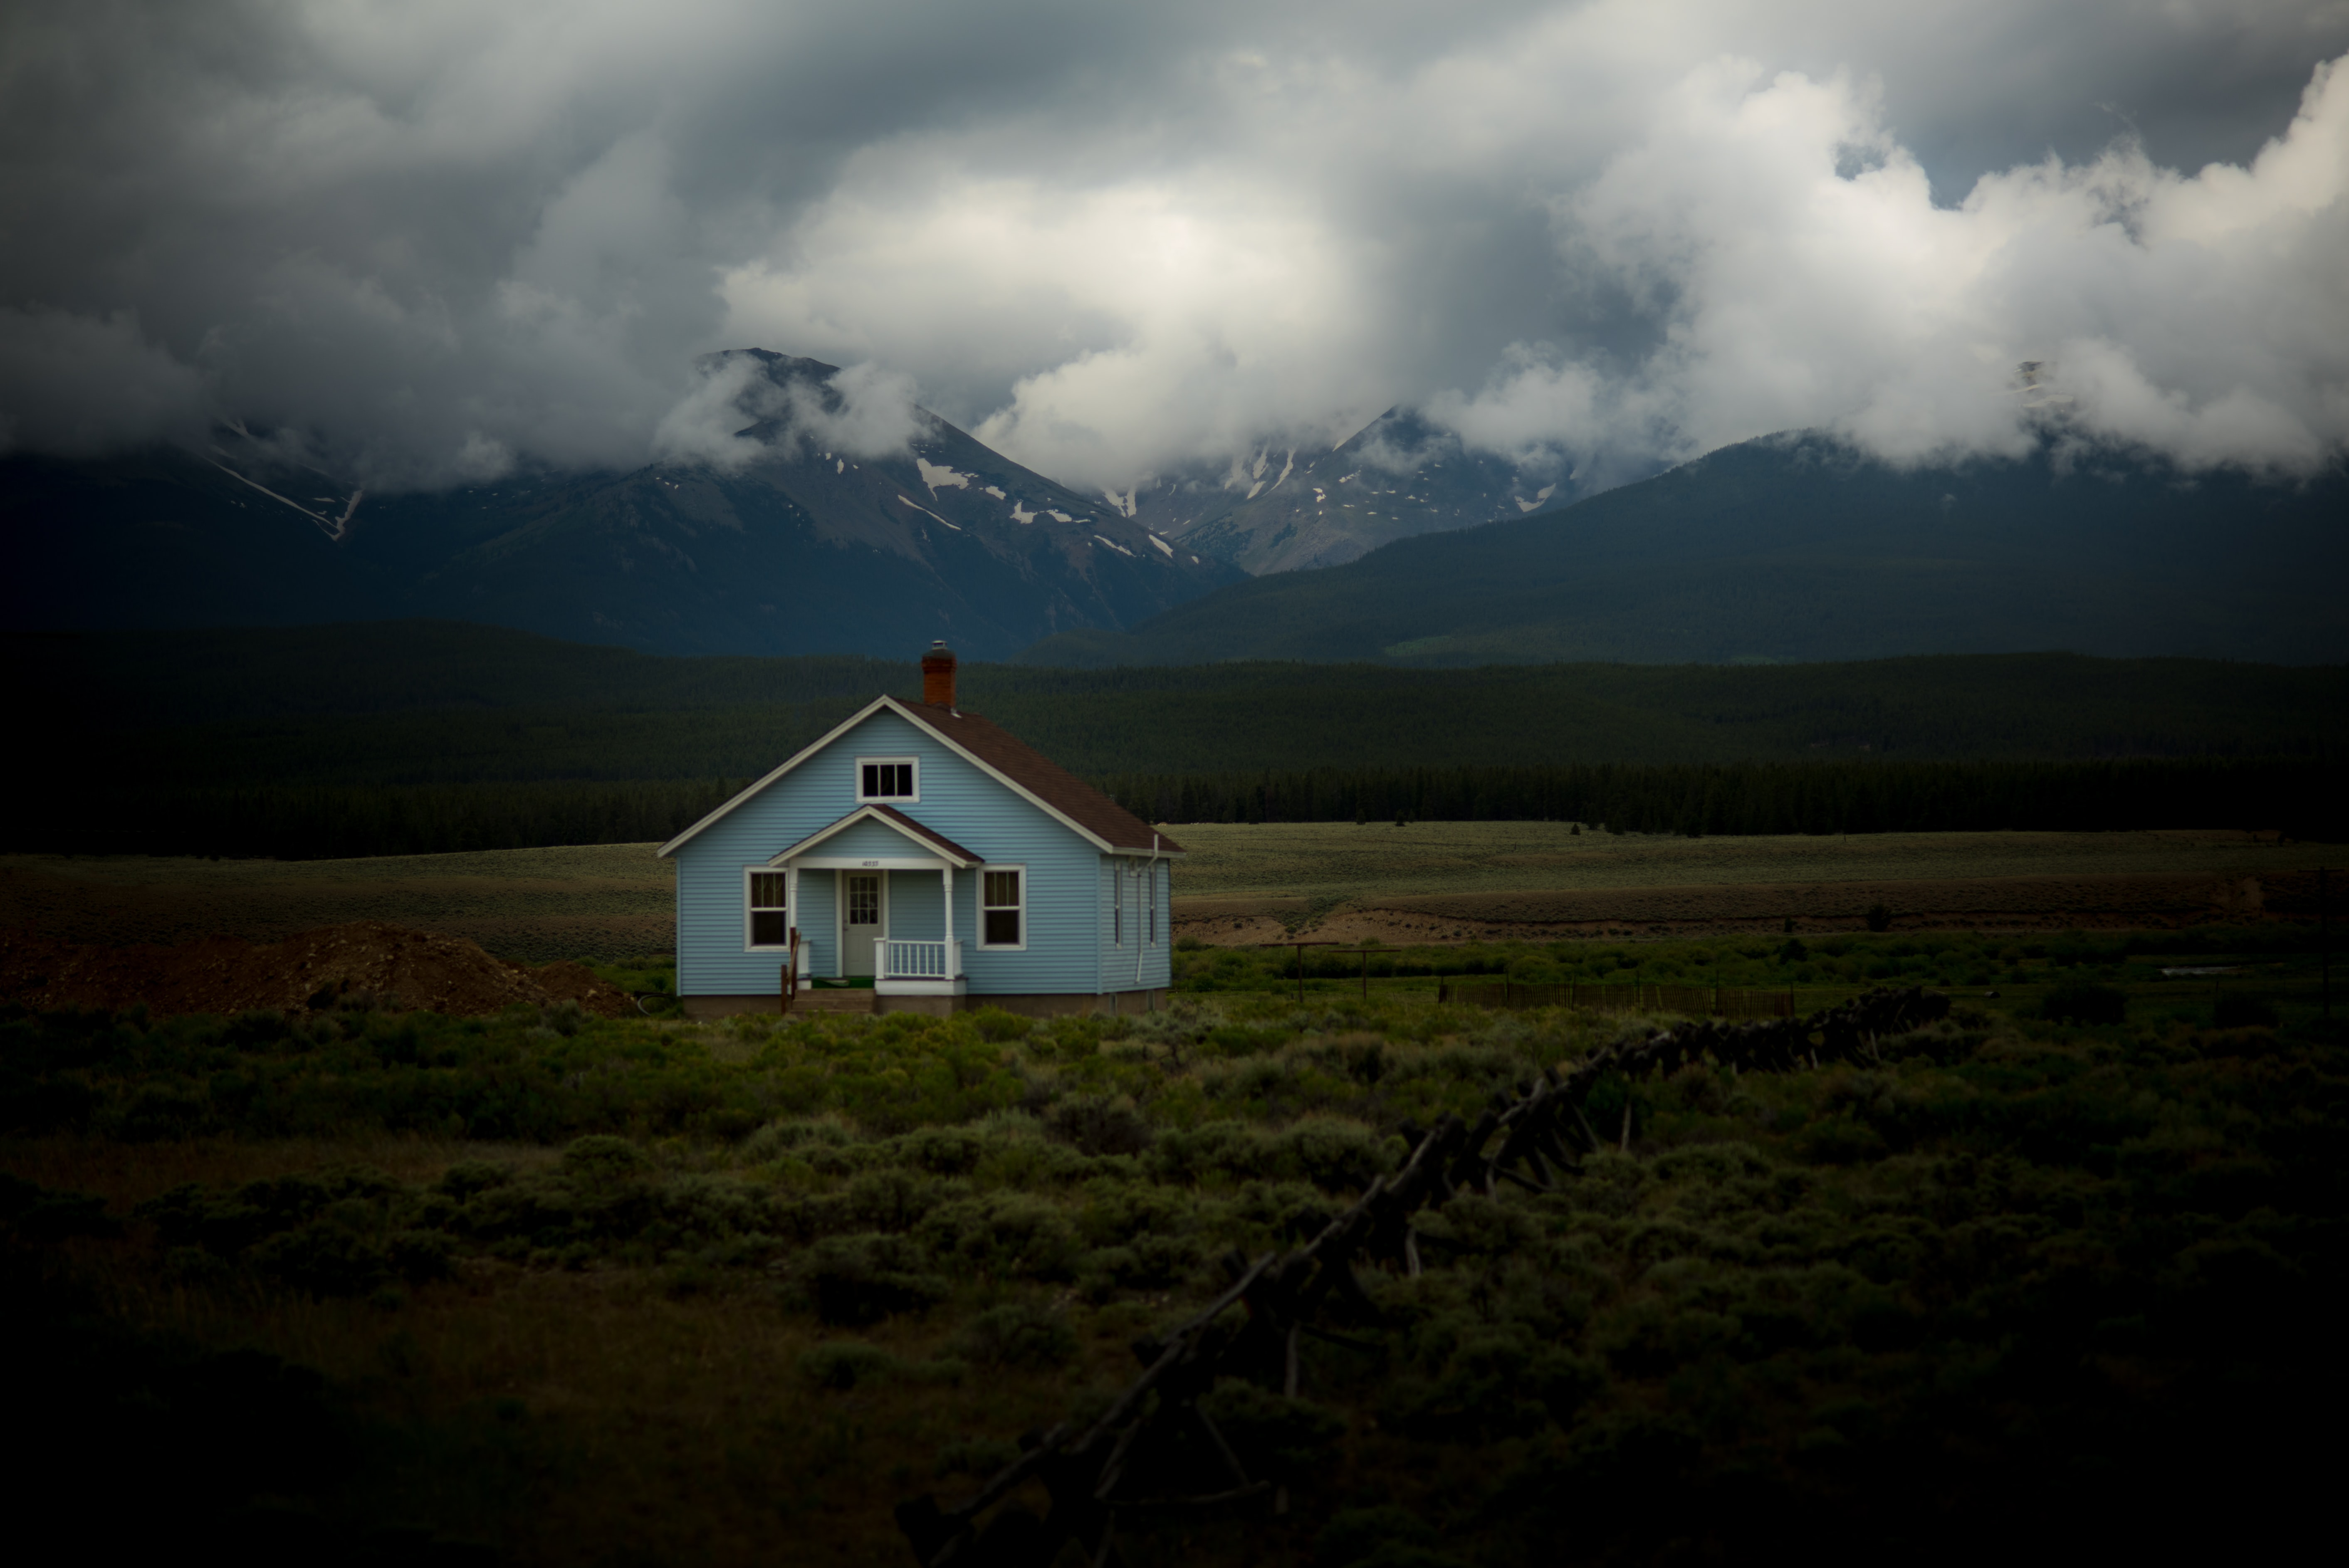 Small, blue house in the middle of a field of grass with mountains covered in clouds behind it